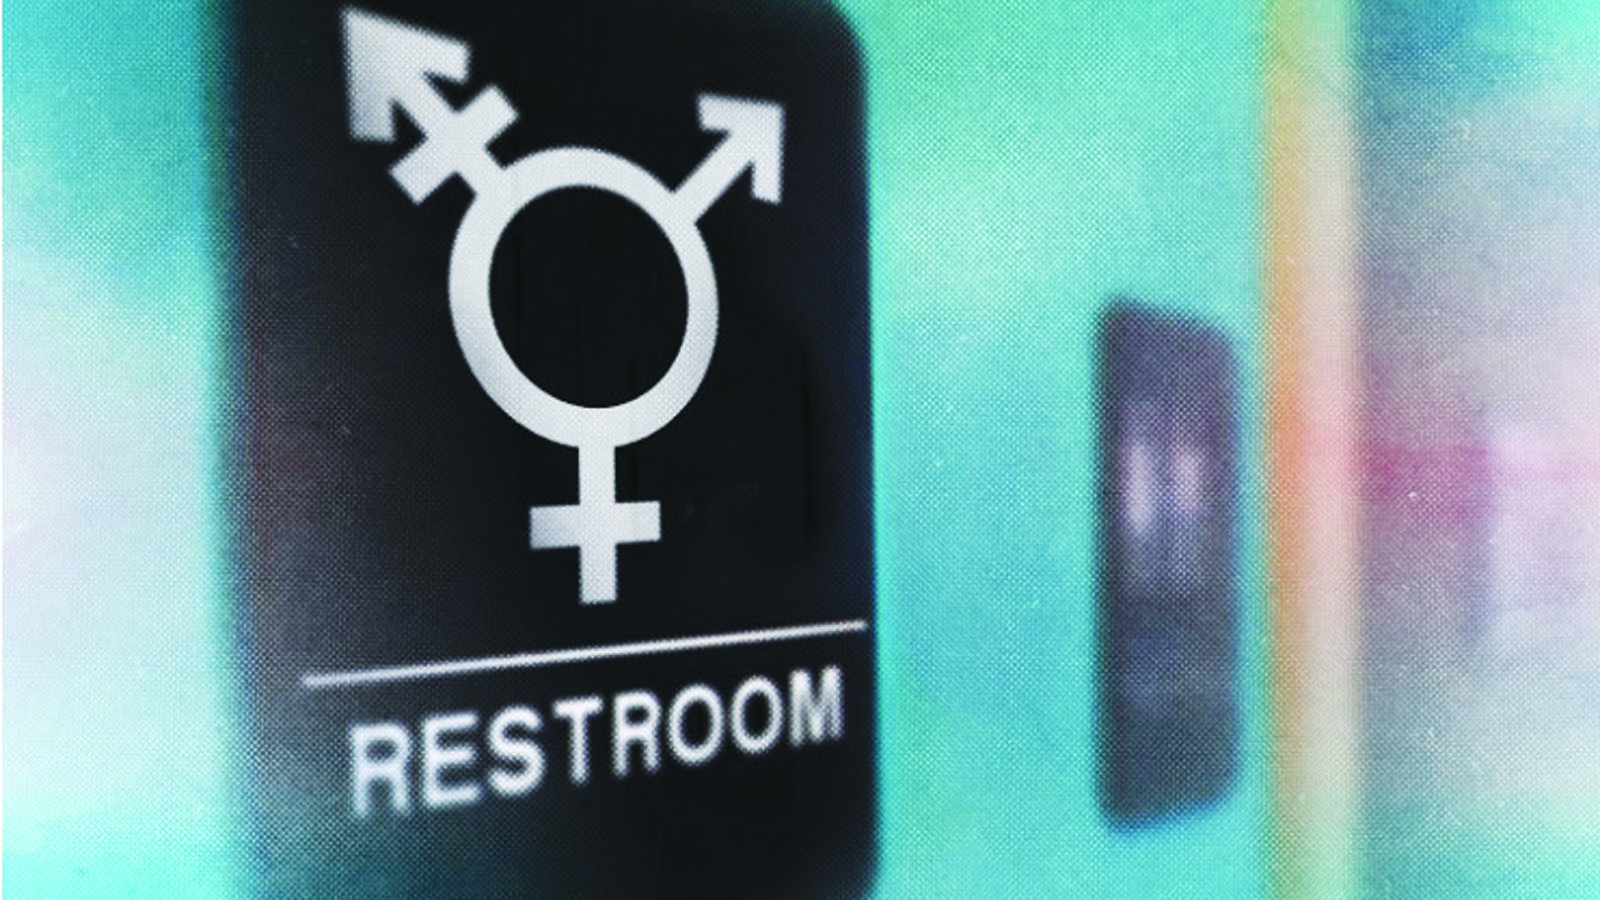 Transgender students often feel relieved when bathroom are unisex because they do not have to choose which bathroom they prefer which results in them being in fear to follow the sex of their choice.